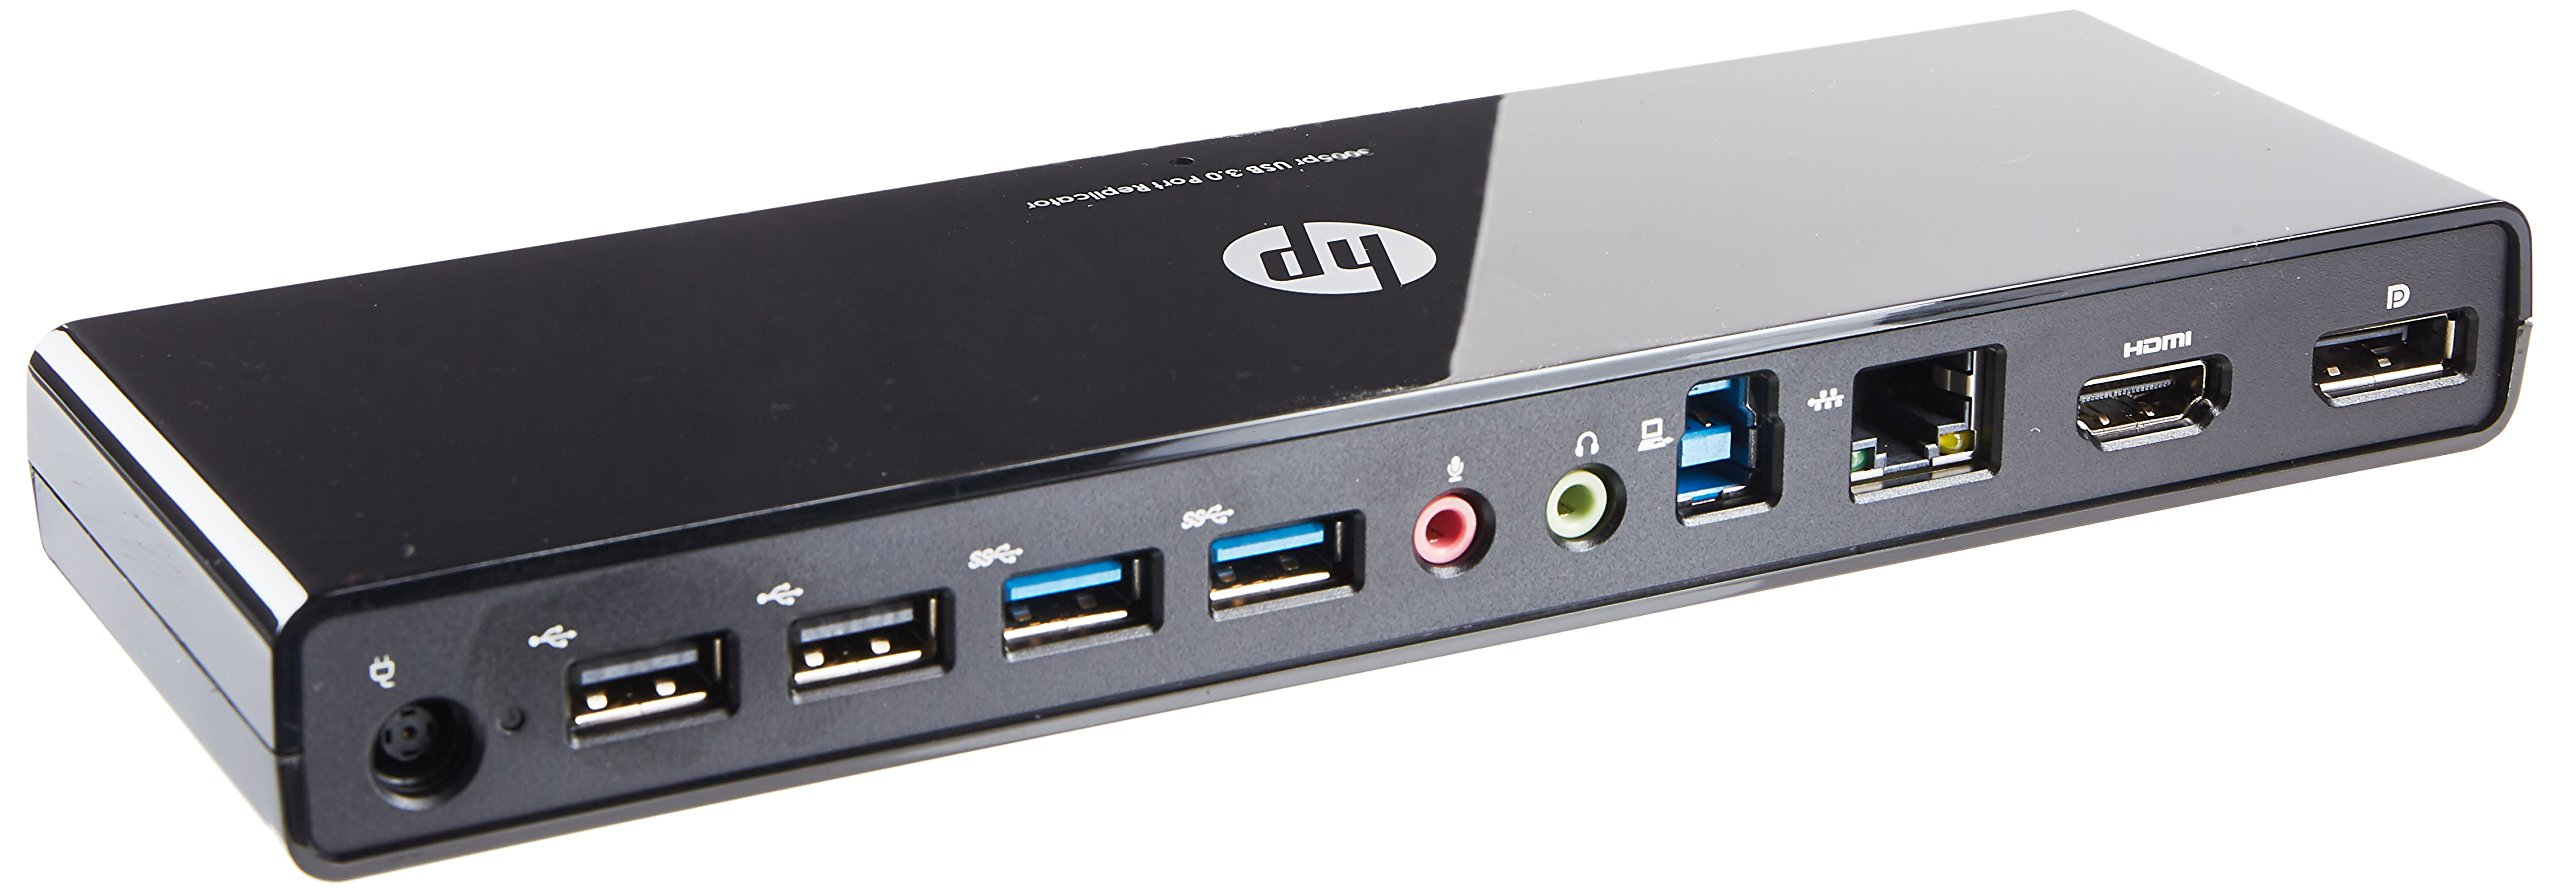 HP USB 3.0 Port Replicator Docking Station (H1L08AA#ABA)